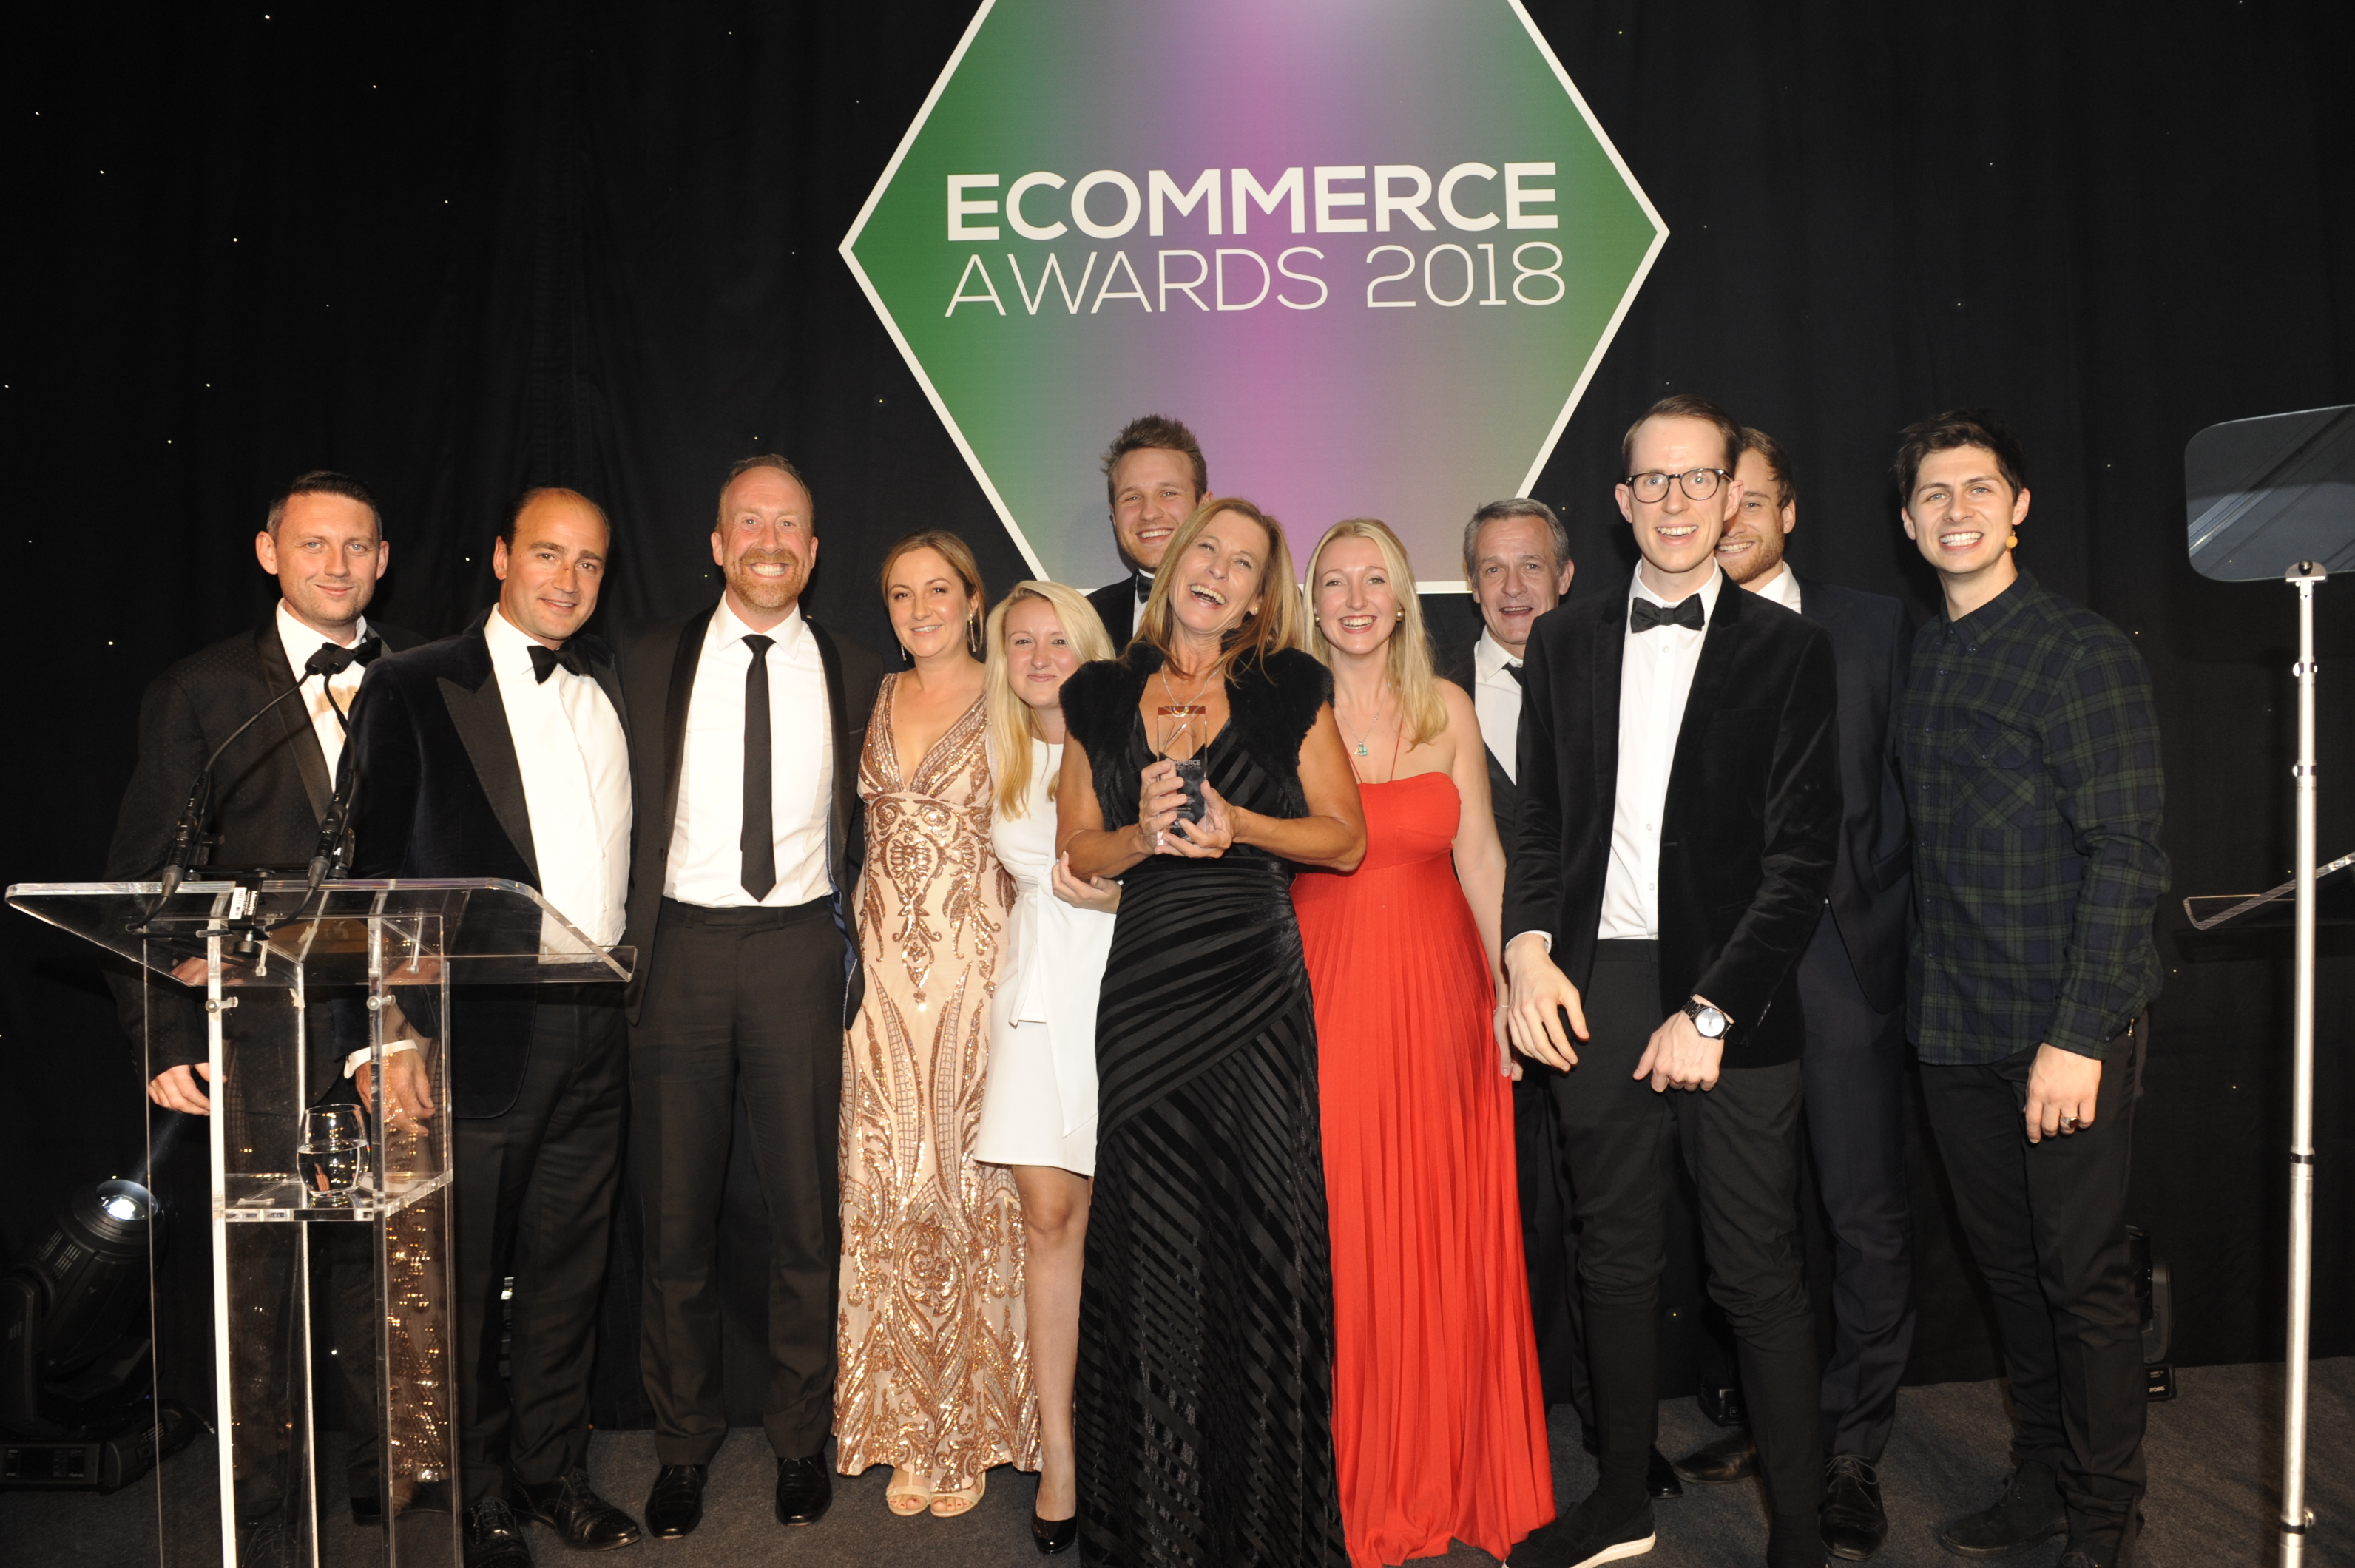 Ecommerce Awards 2018 winner